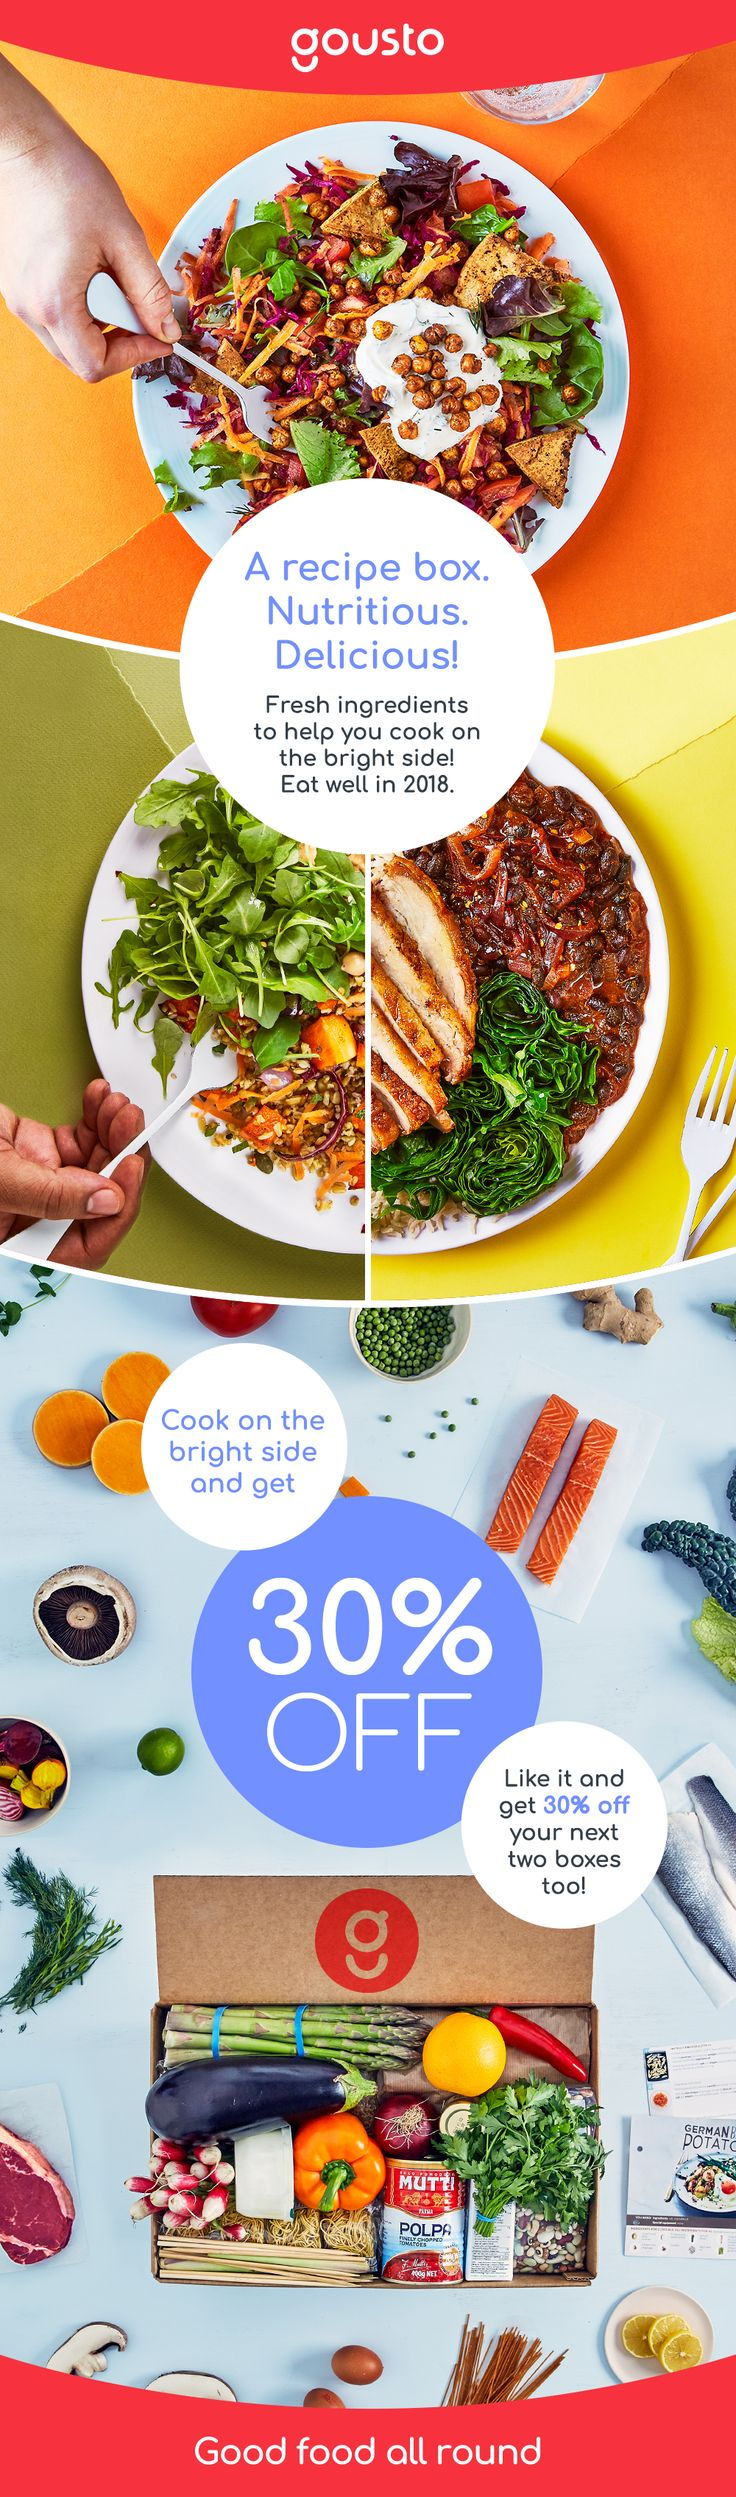 Eat better in 2018: it's simple with a recipe box!  Limited offer: 30% off your first box! That is less than £30 per box for 3 delicious meals for 4 people.